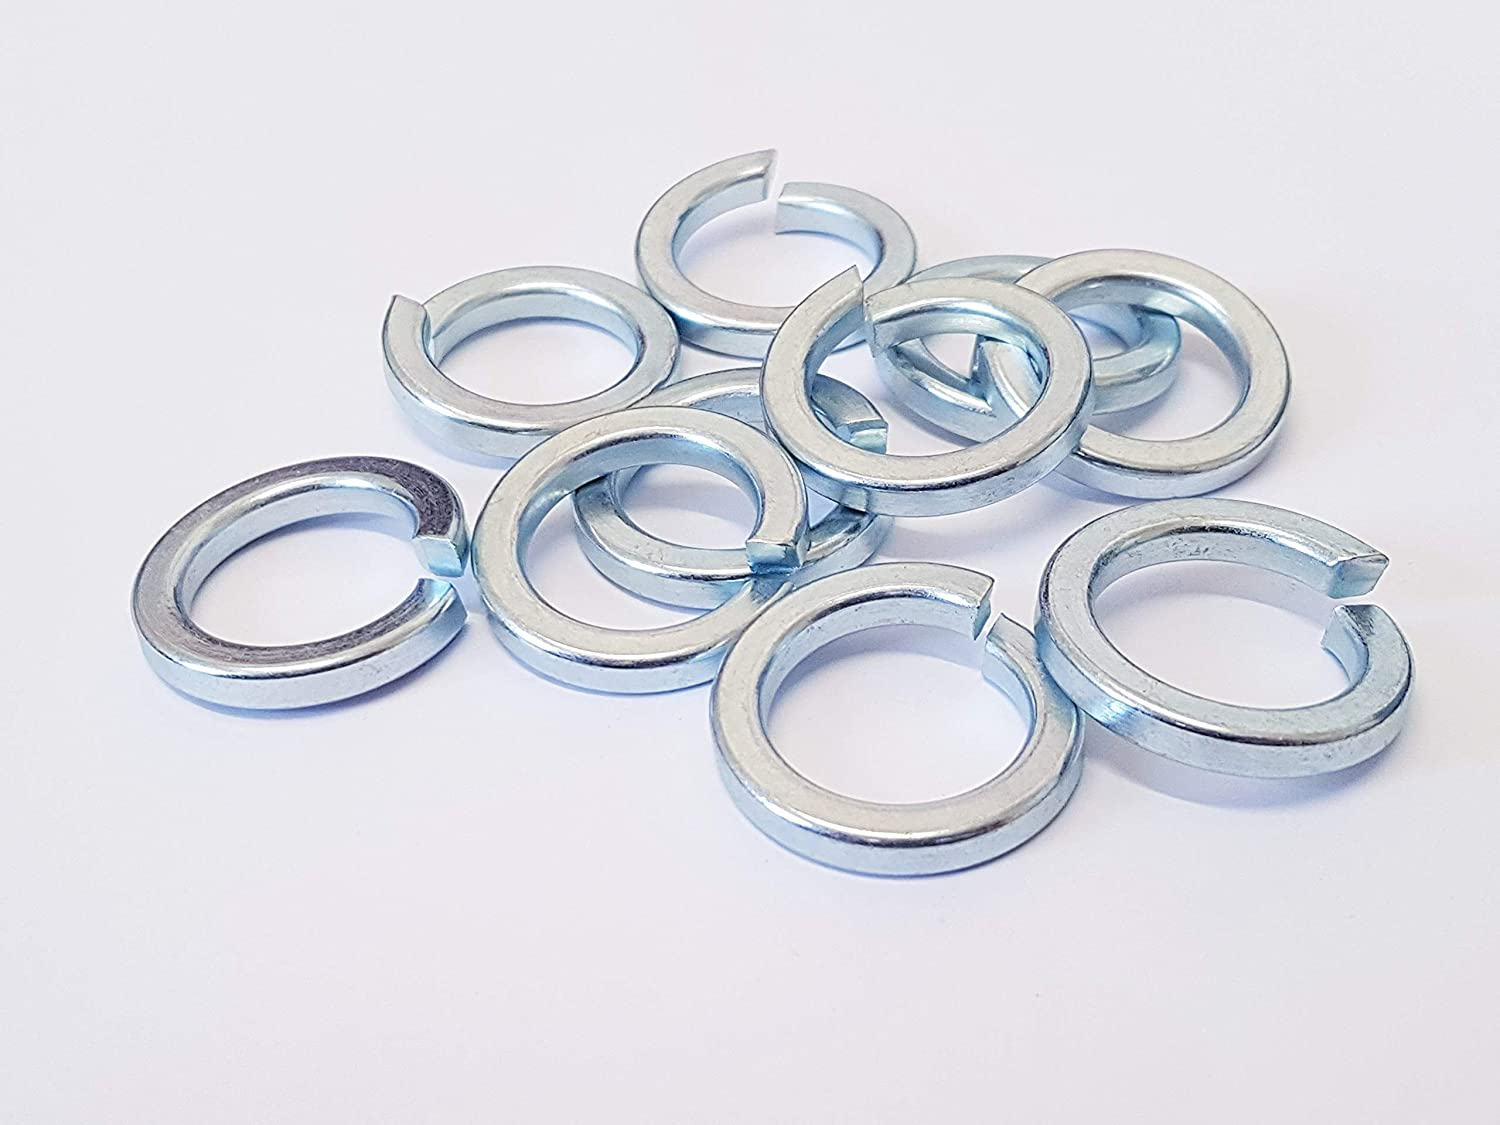 M20 Square Section Spring (Split)(Lock) Washer ZINC Plated (Pack of 20) GENERIC